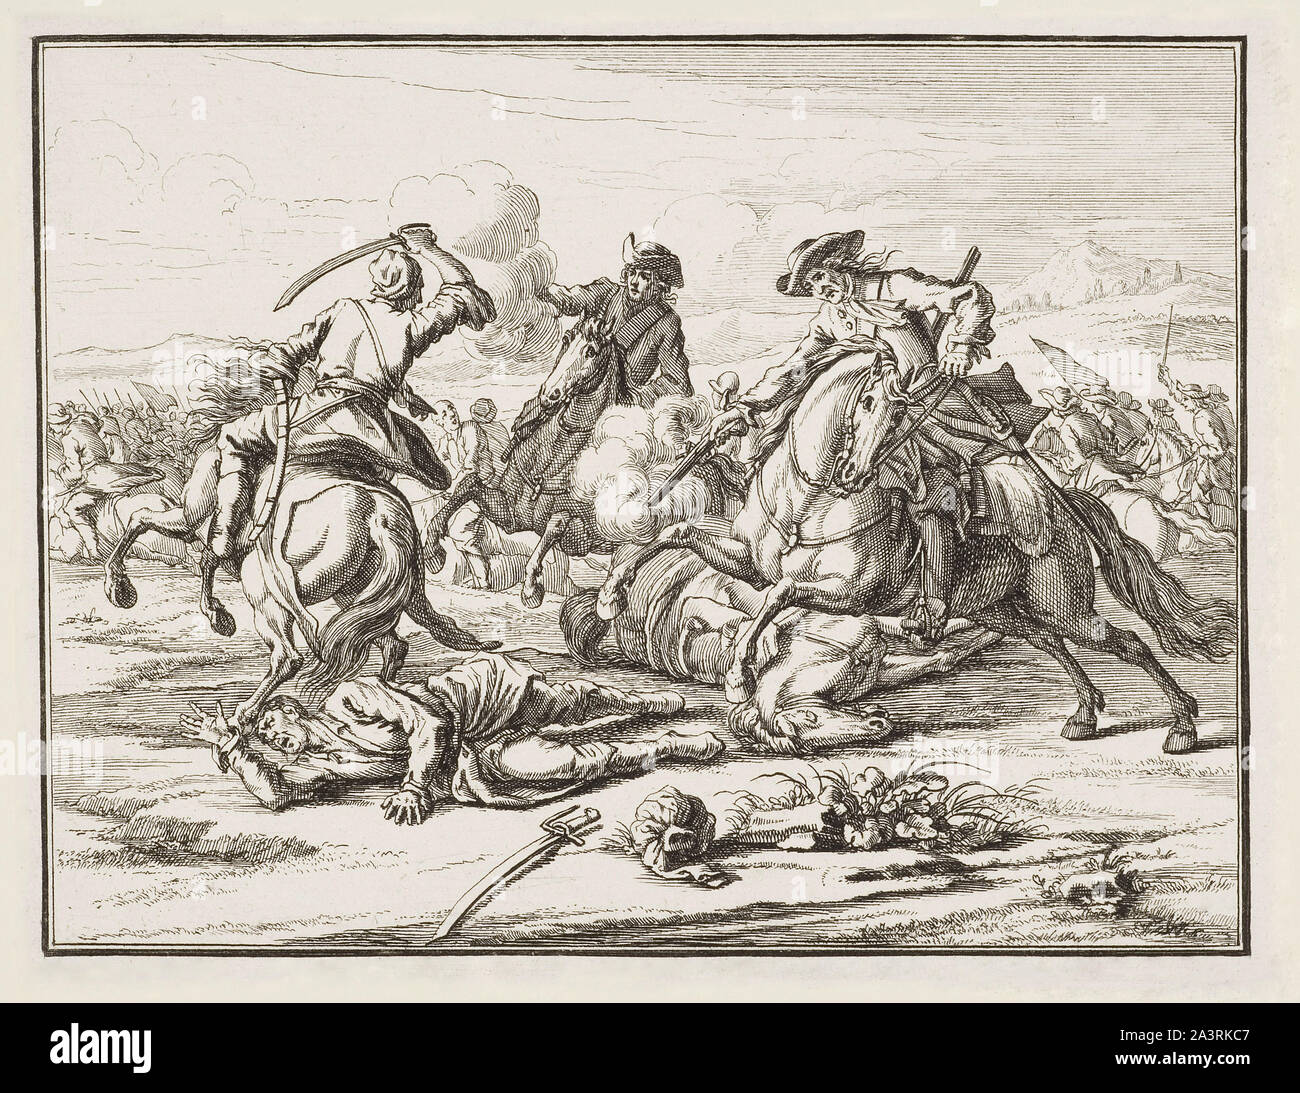 Engravings of horse battles and skirmishes in Europe in the 17th and 18th century. Stock Photo